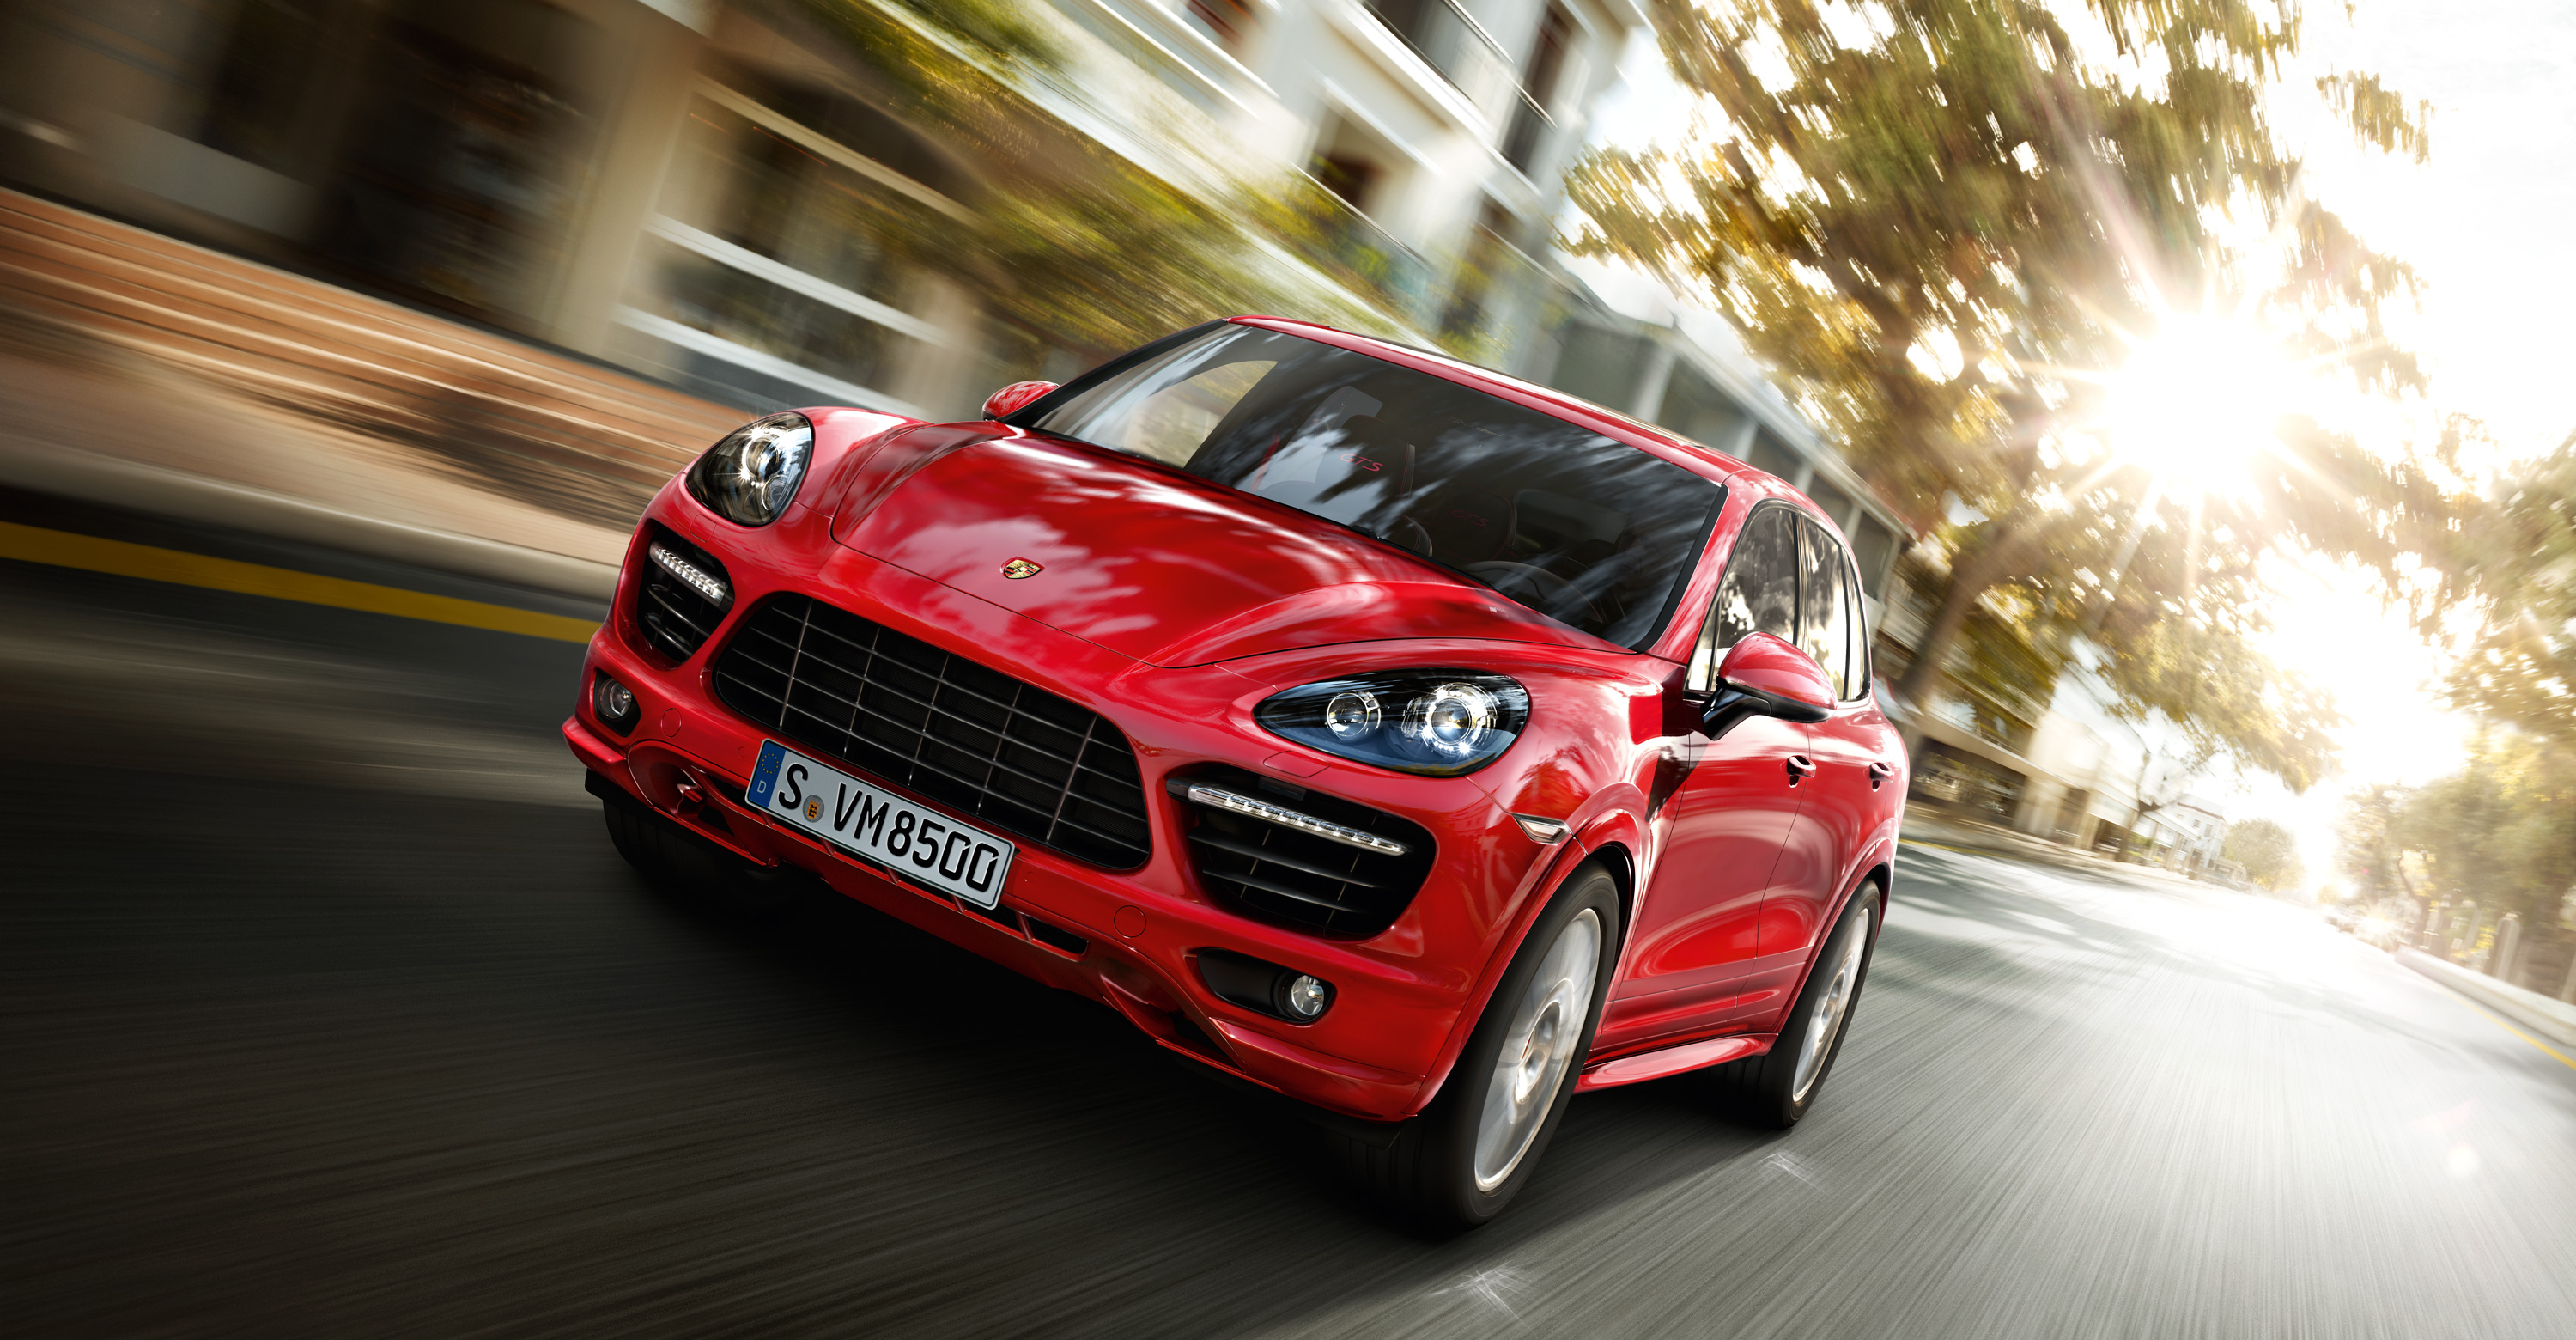 911 Carrera Gts >> 2012 Porsche Cayenne GTS wallpapers